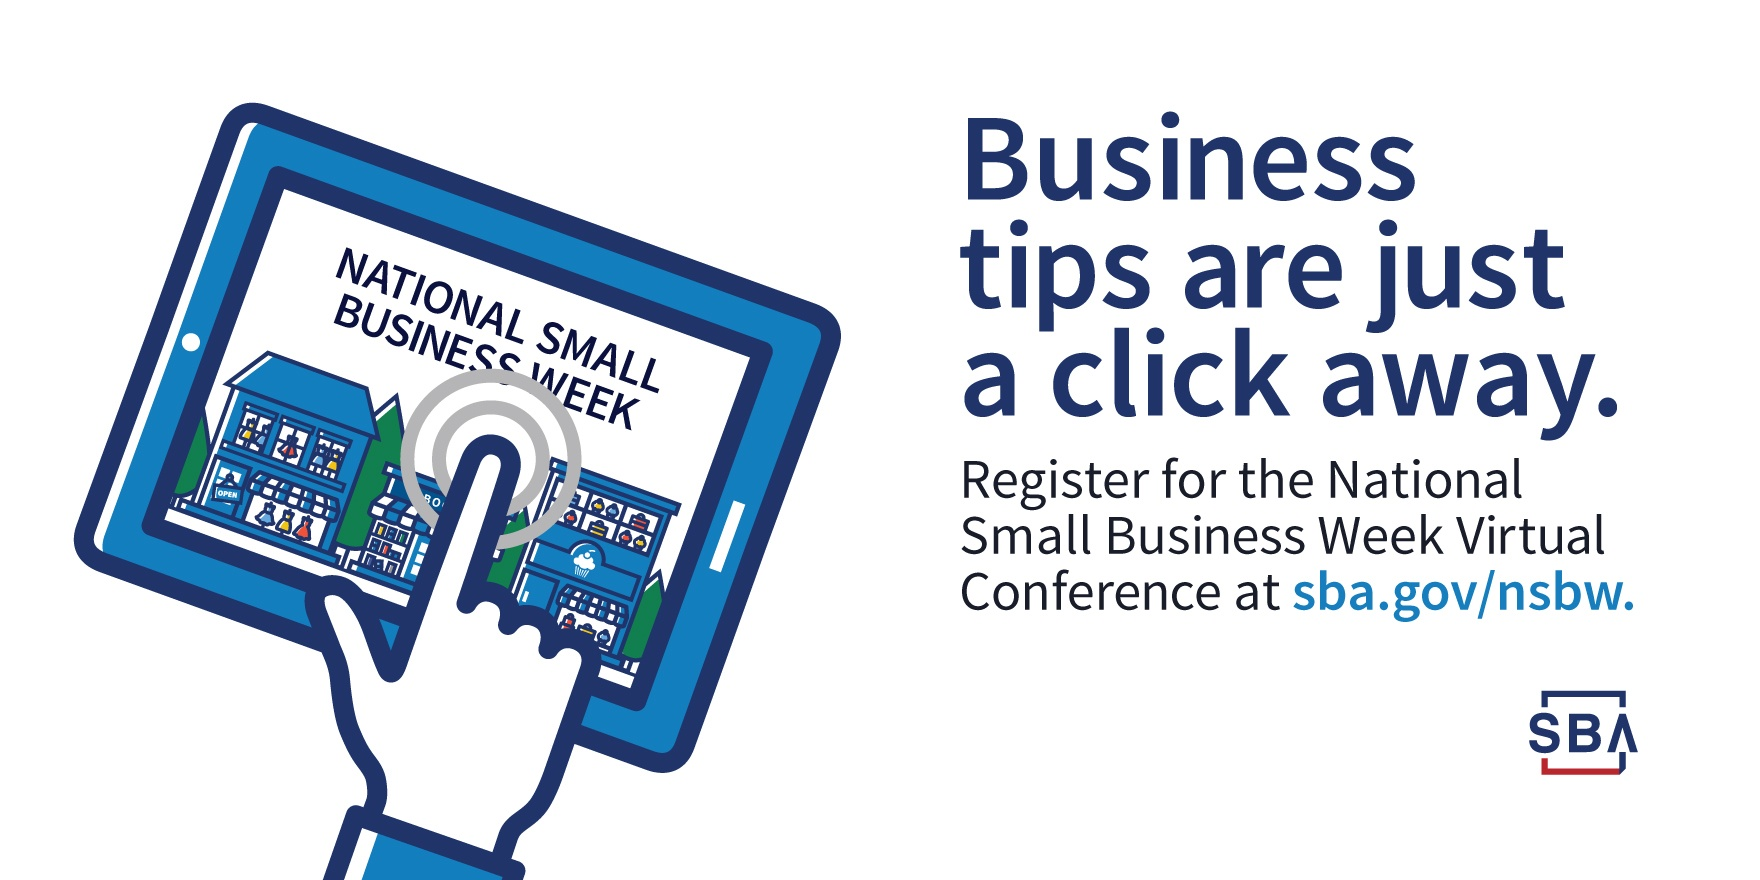 Business tips are just a click away. Register for the National Small Business Week Virtual Conference at sba.gov/nsbw